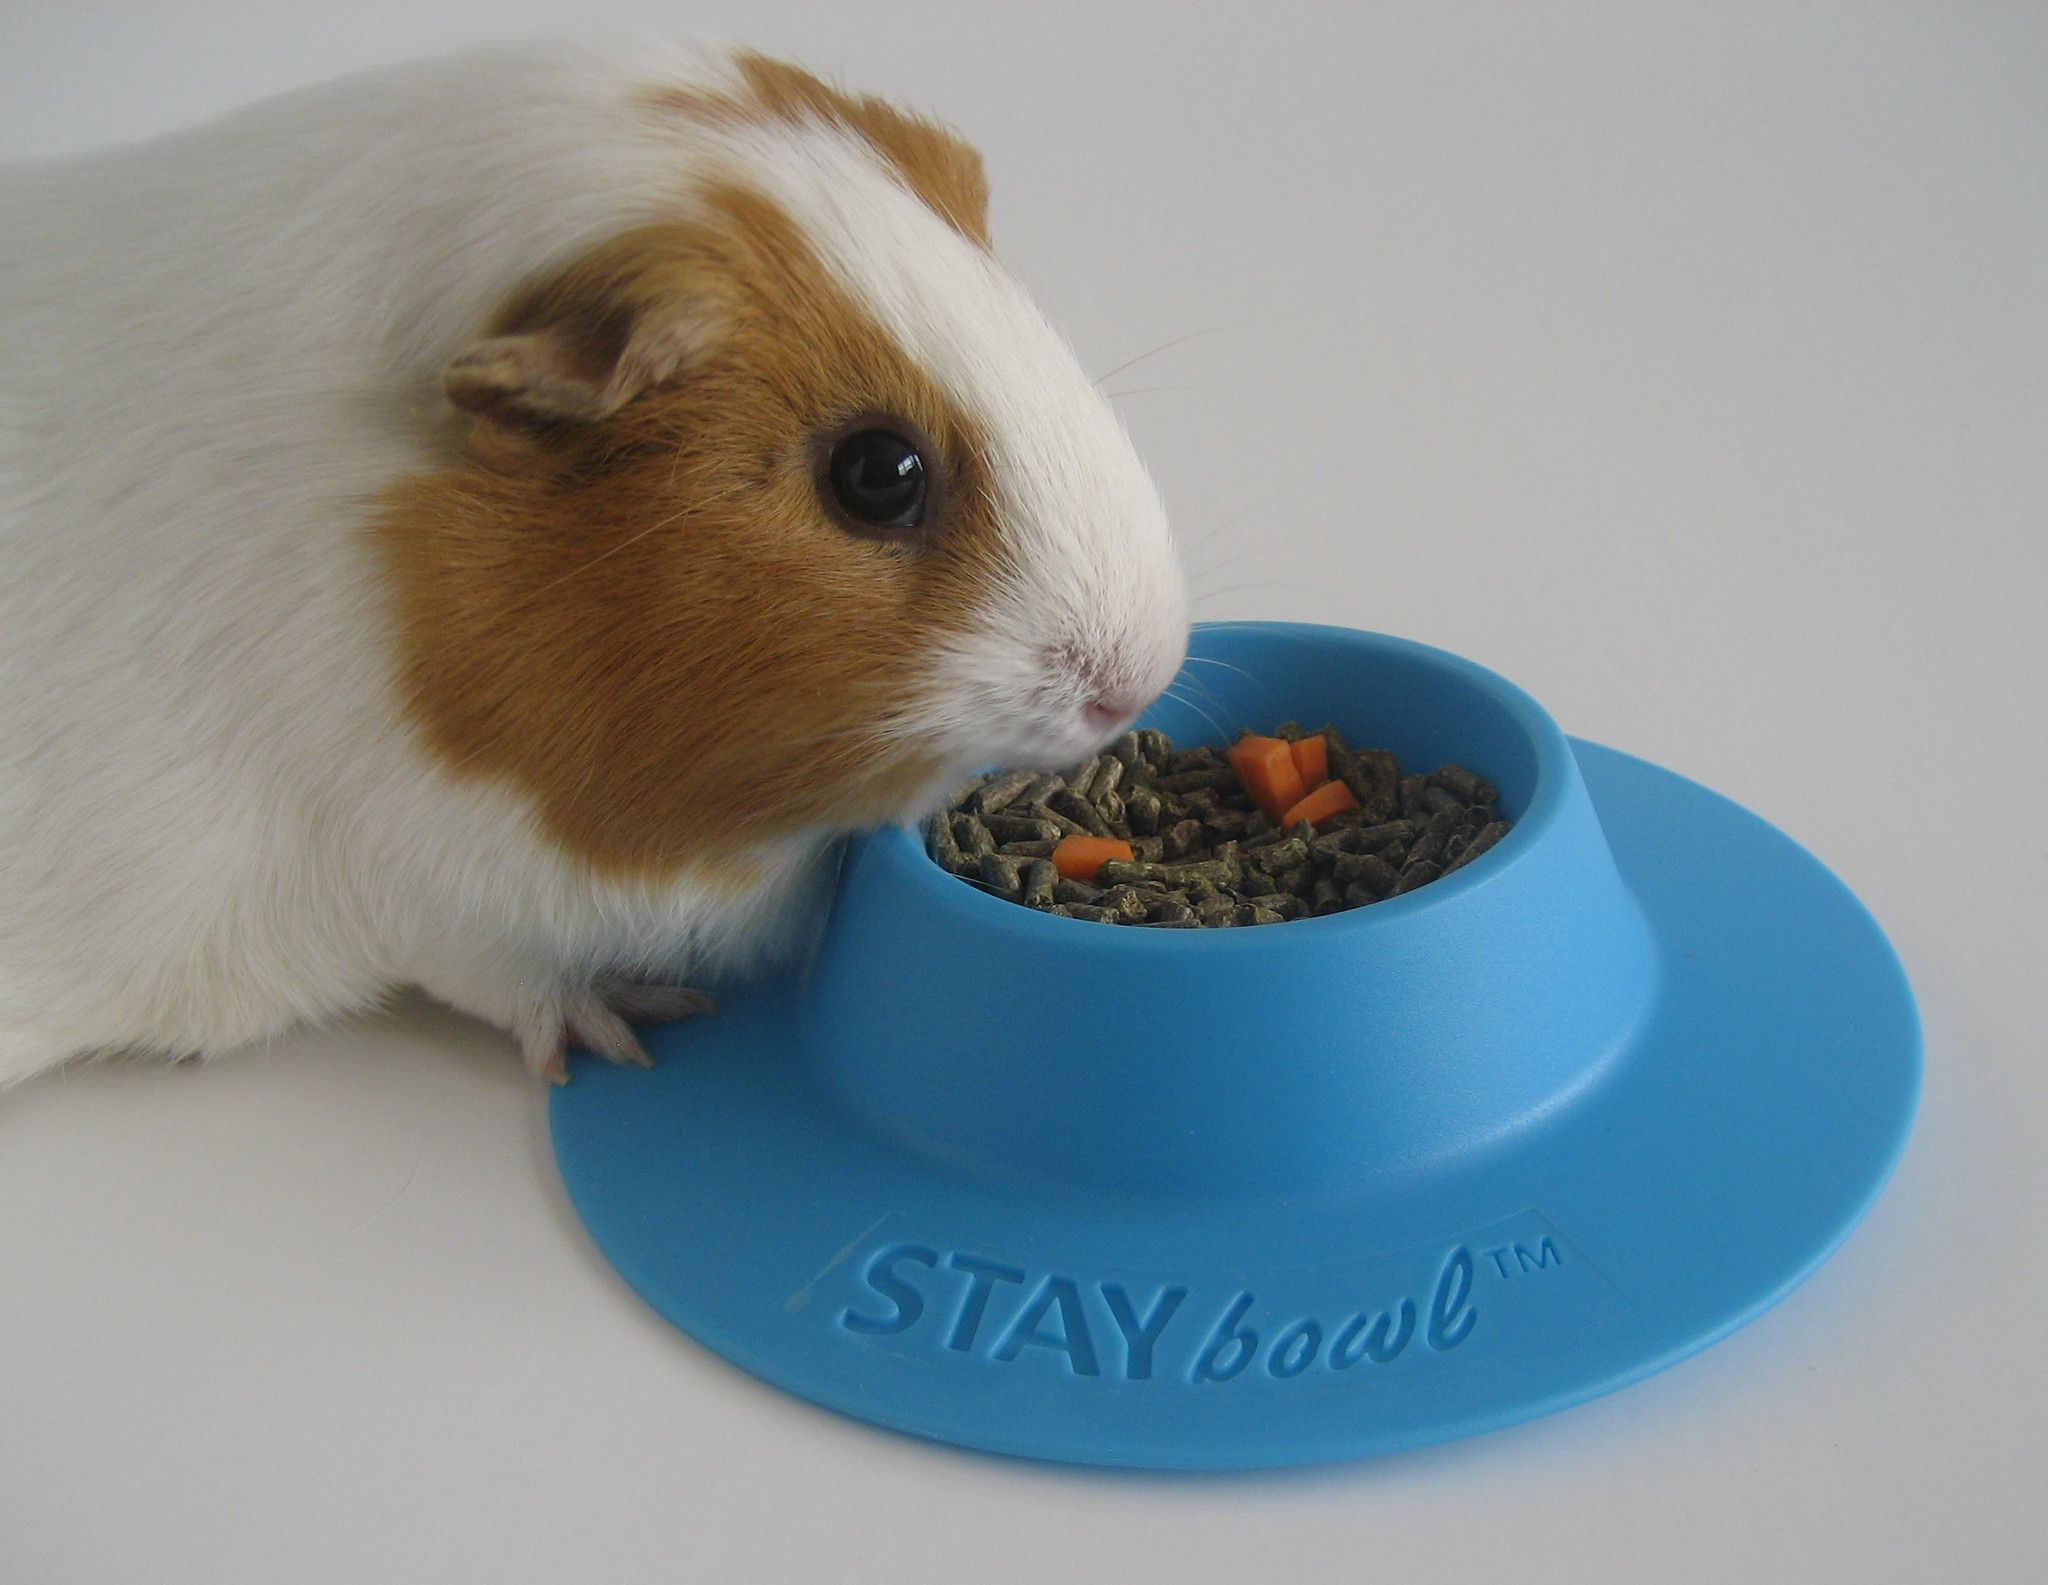 Pin on Guineapig things